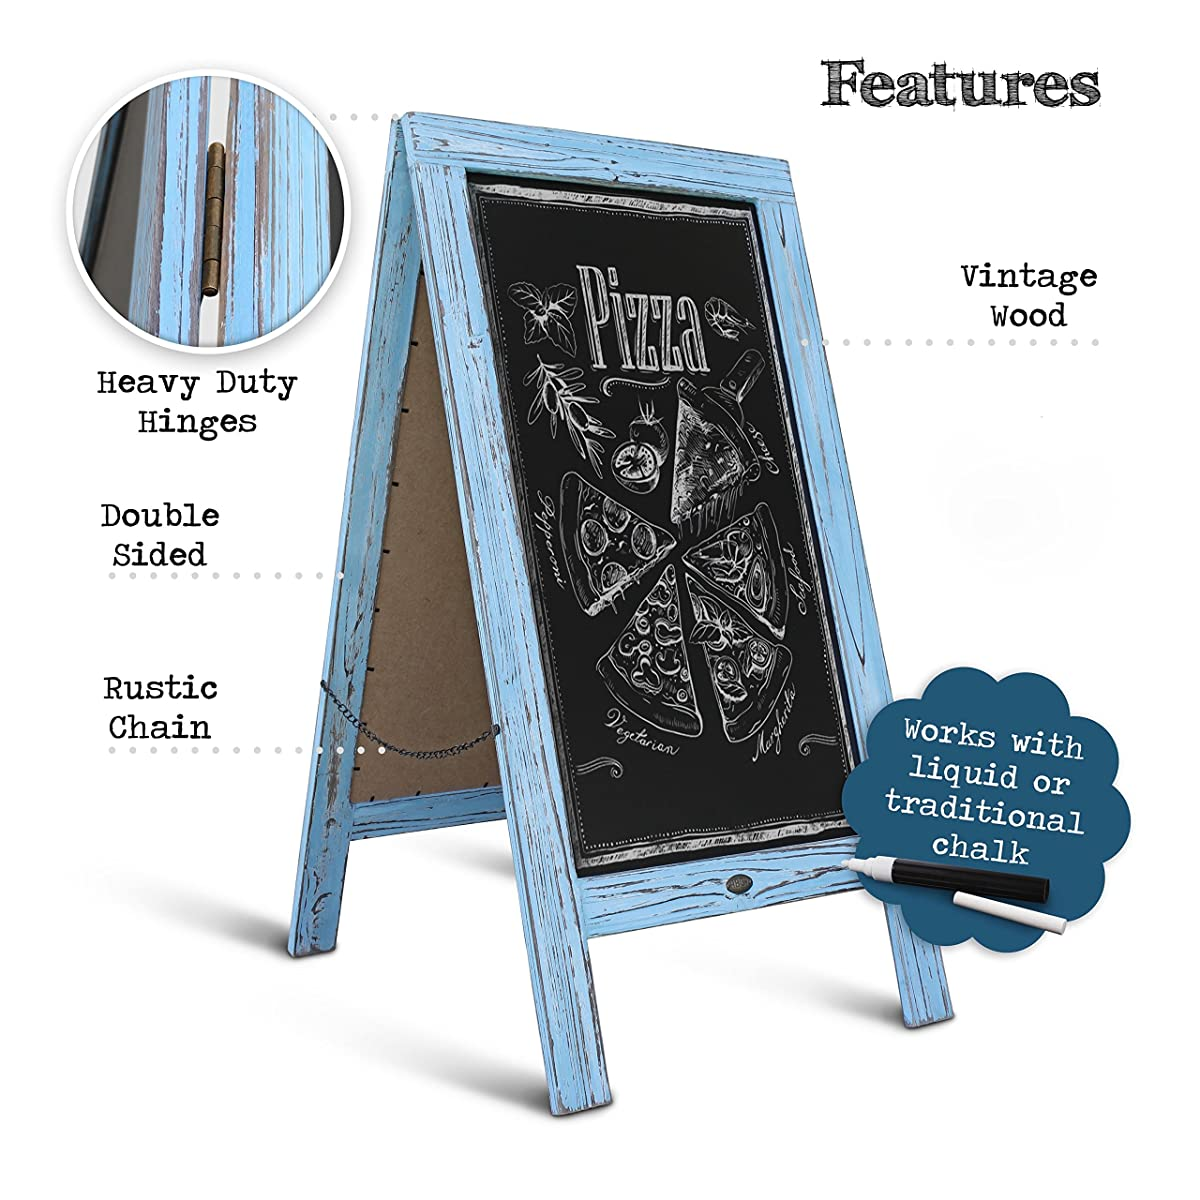 Rustic Robin Blue A-Frame Chalkboard / Sidewalk Chalkboard Sign / Large Sturdy Sandwich Board / A Frame Restaurant Message Board / Freestanding Wooden Menu Display Sign